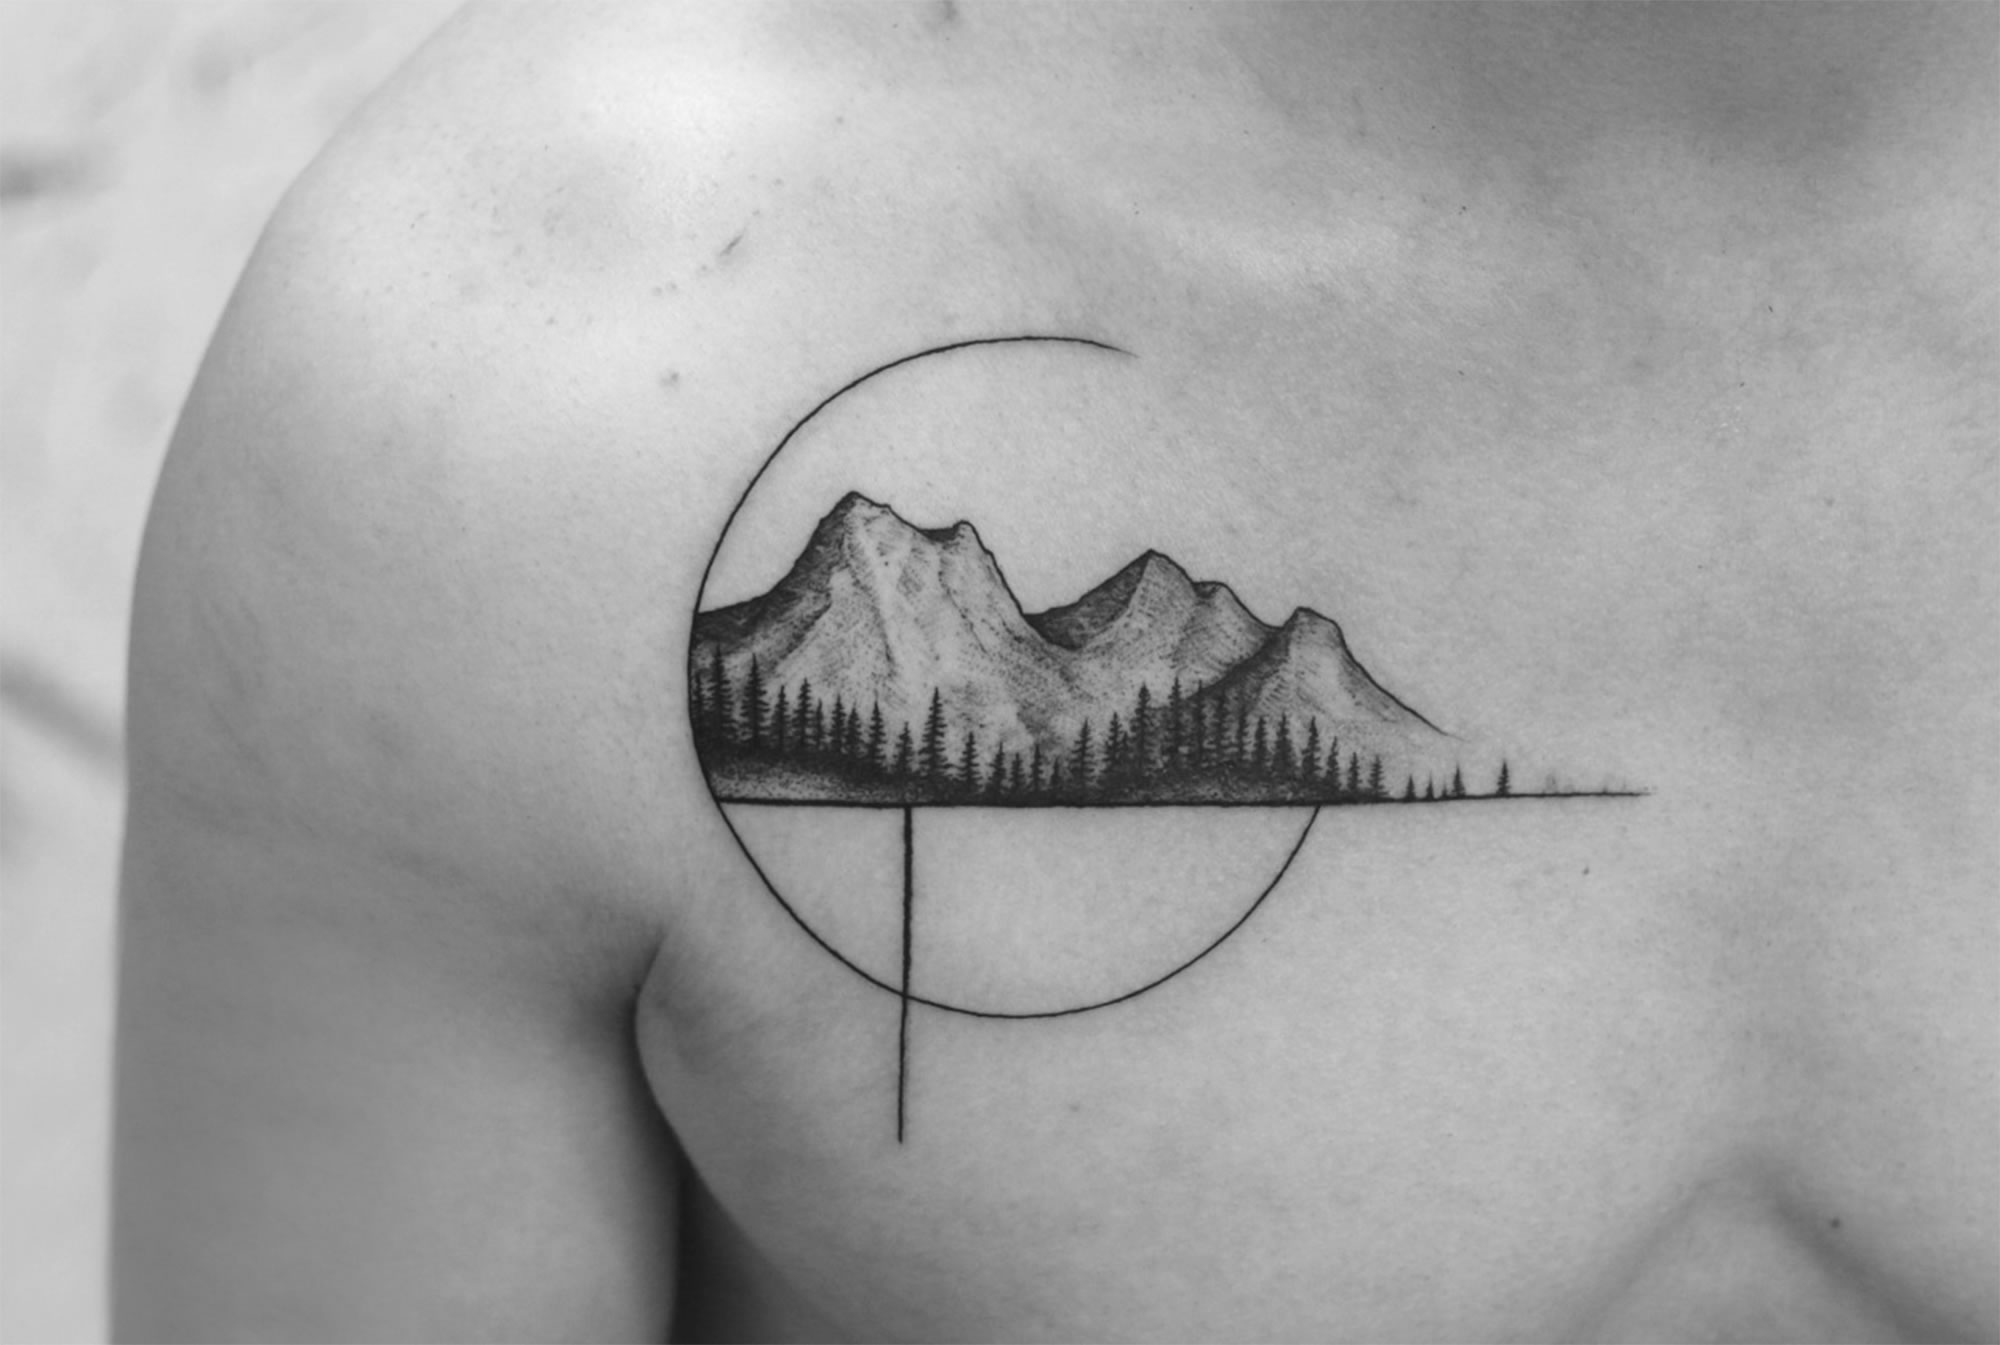 Marian Merl's Perfectly-Placed Blackwork Tattoos